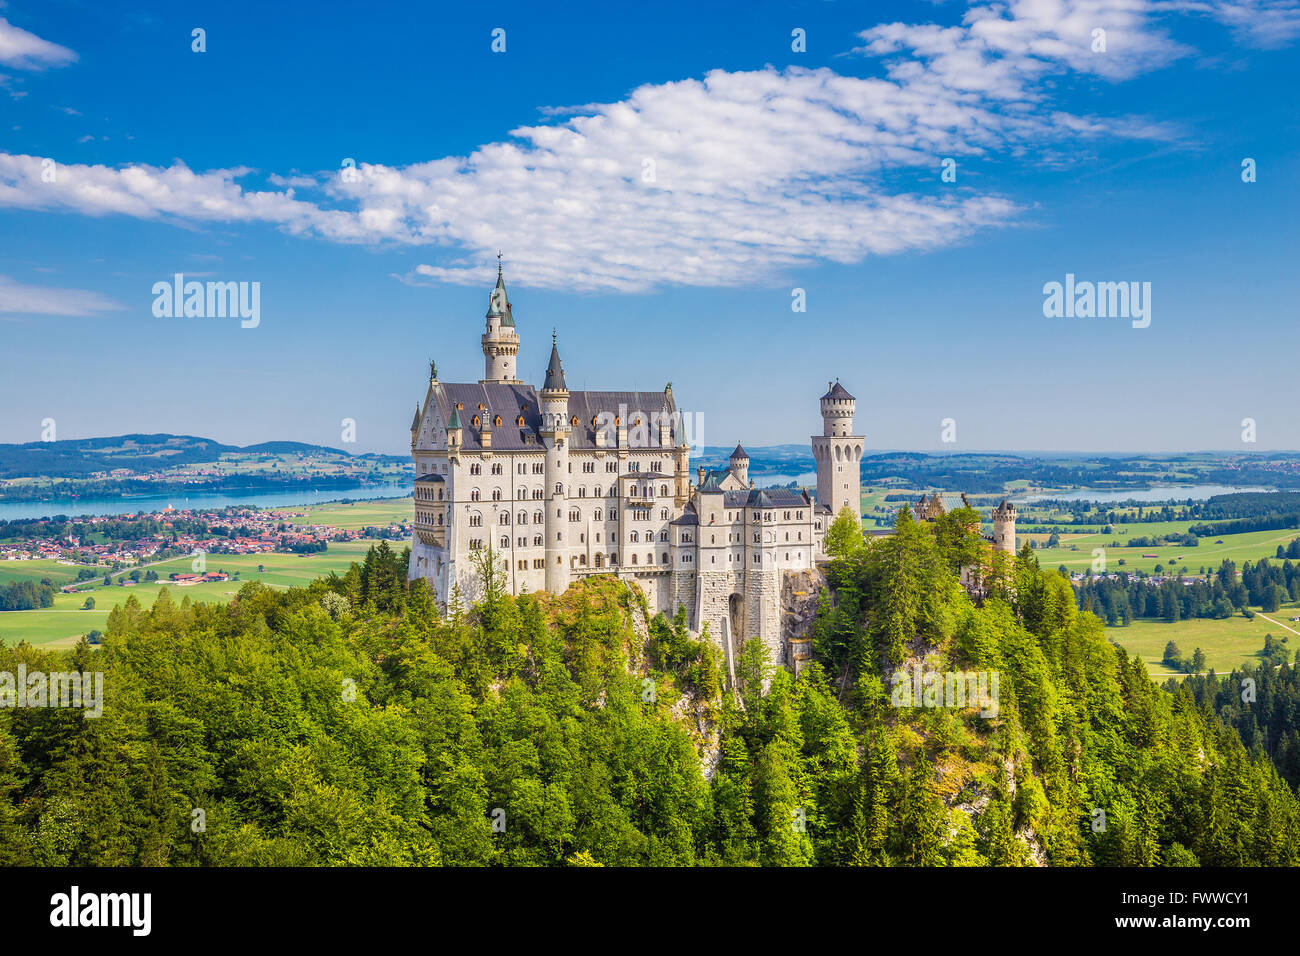 Classic view of famous Neuschwanstein Castle, Bavaria, Germany - Stock Image